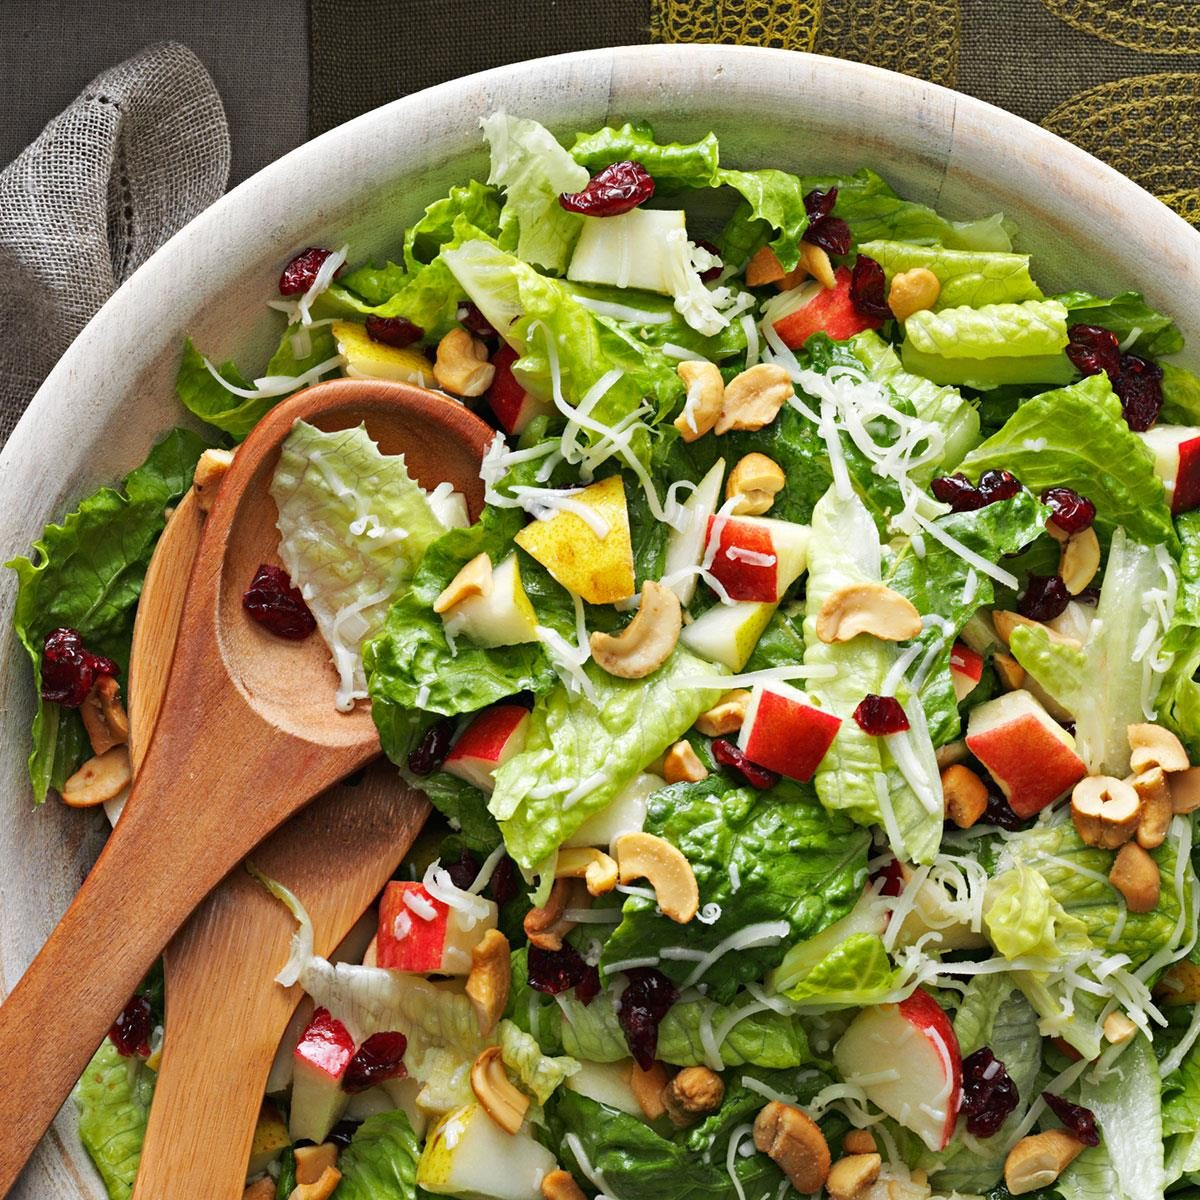 Holiday Lettuce Salad Recipe: How to Make It | Taste of Home